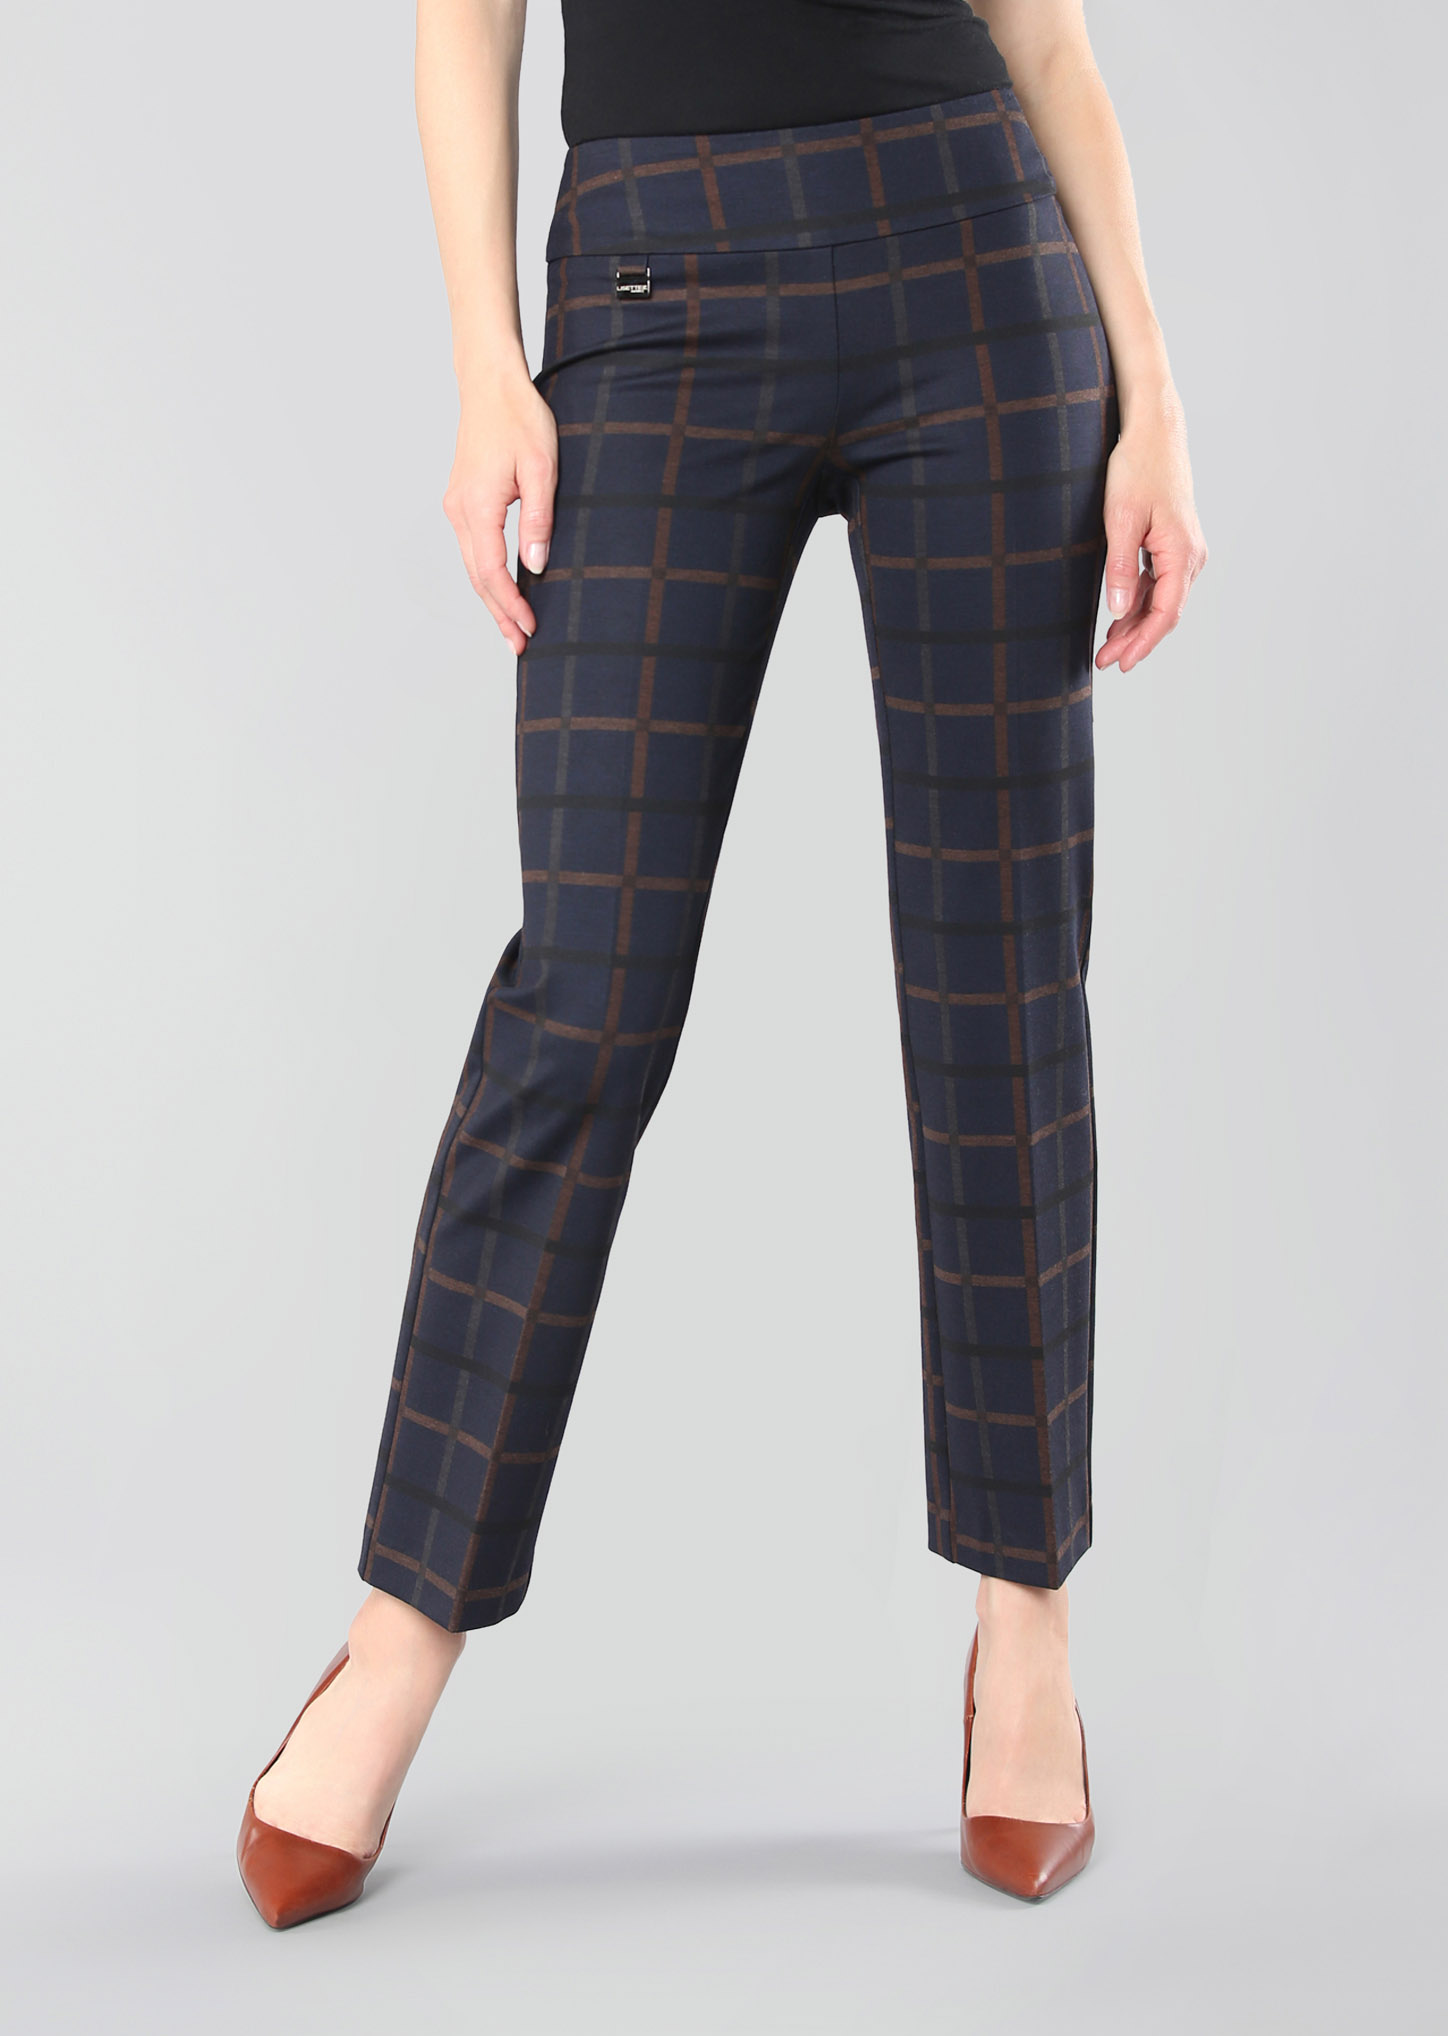 Lisette L. Ankle Trouser Style 69056 Crowley Check PDR Color Navy